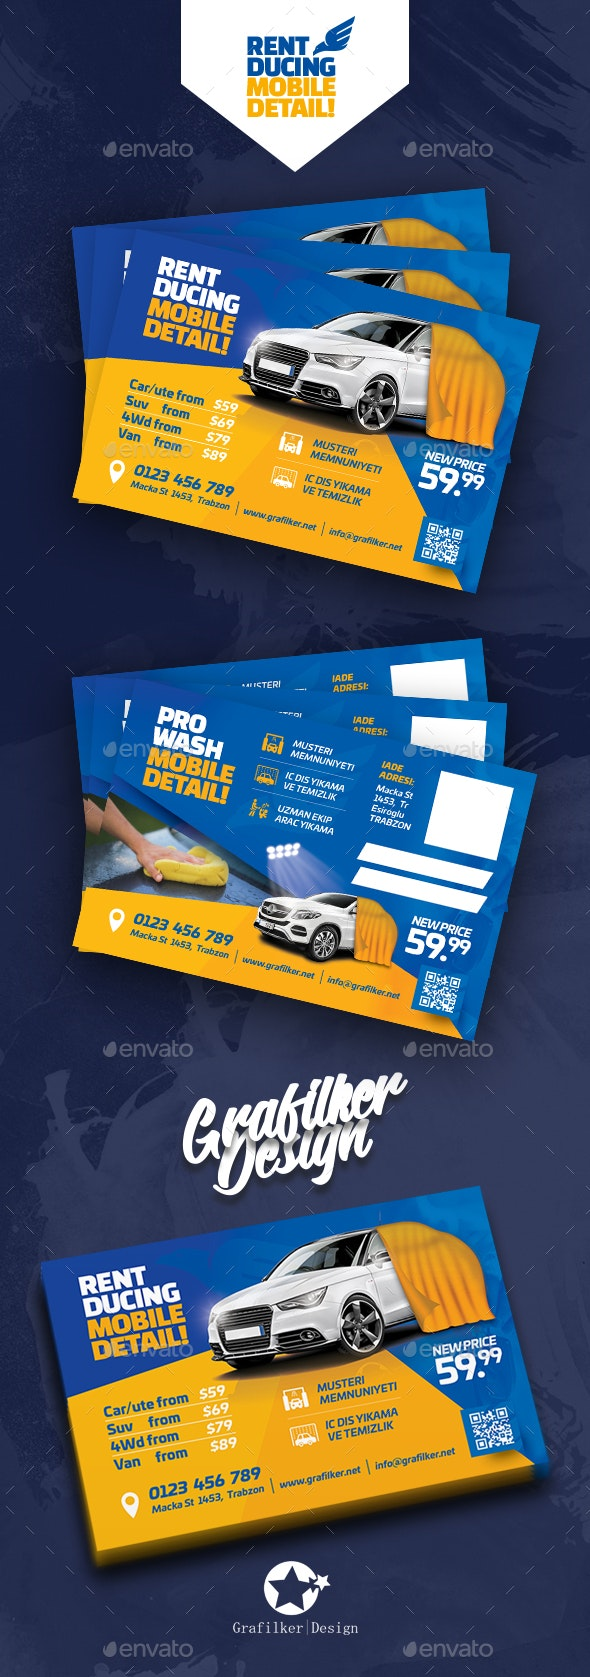 Car Wash Postcard Templates - Cards & Invites Print Templates